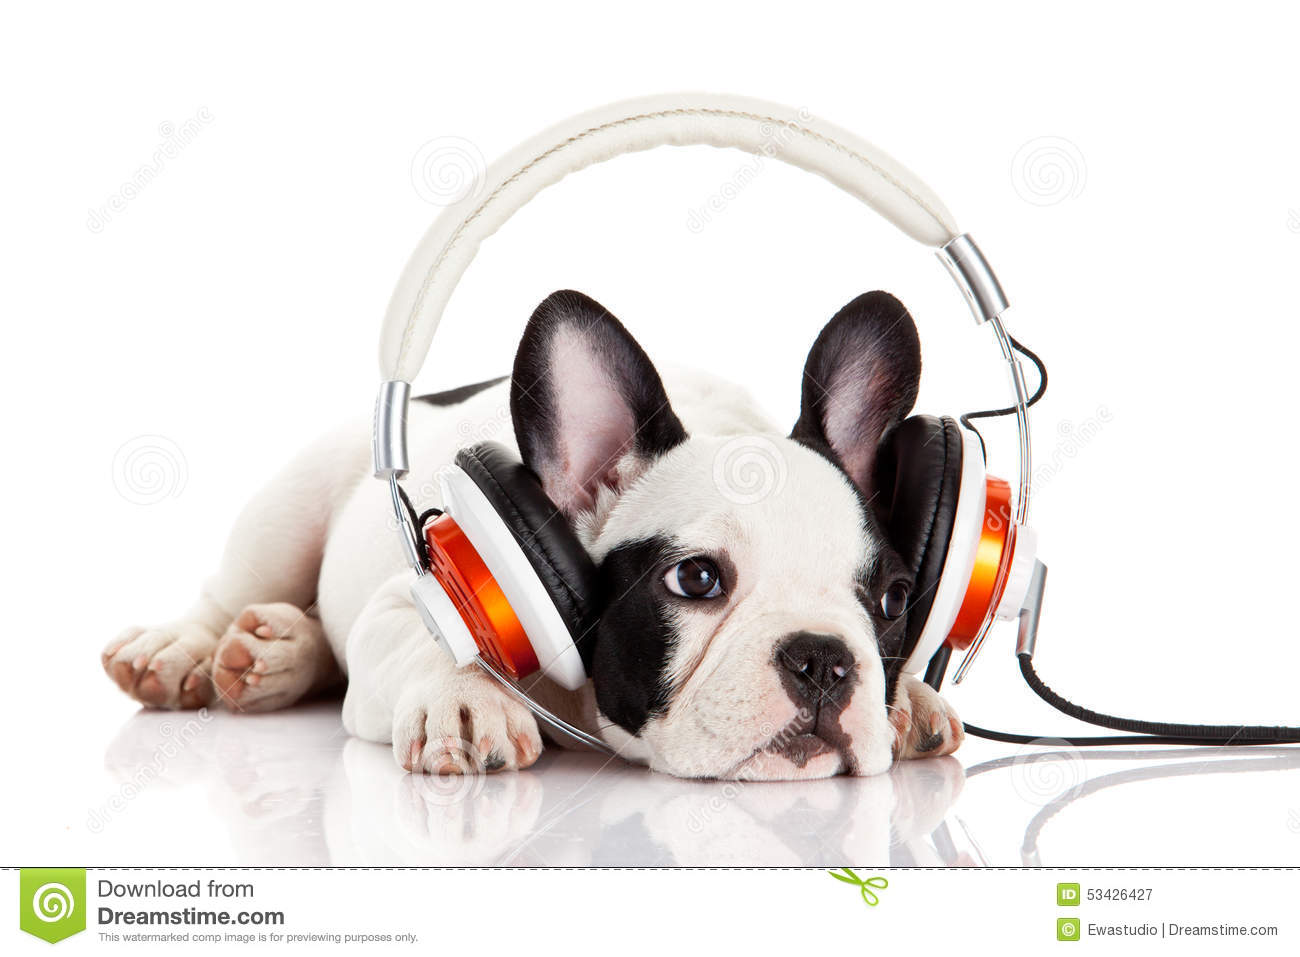 Dog Listening To Music With Headphones Stock Photo - Image ...